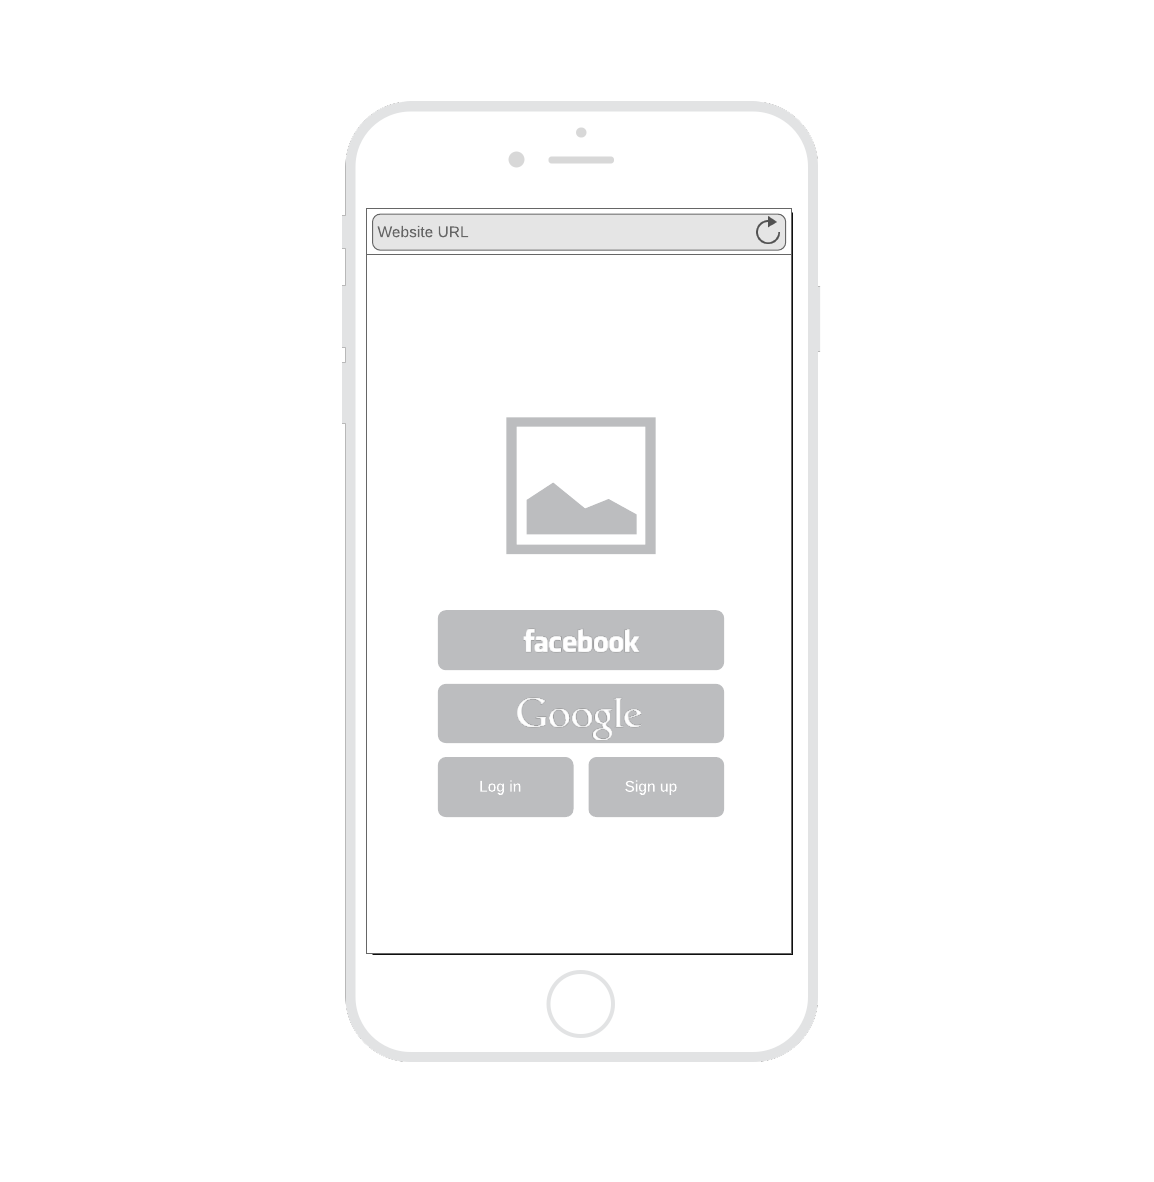 mobile login or sign-up page wireframe